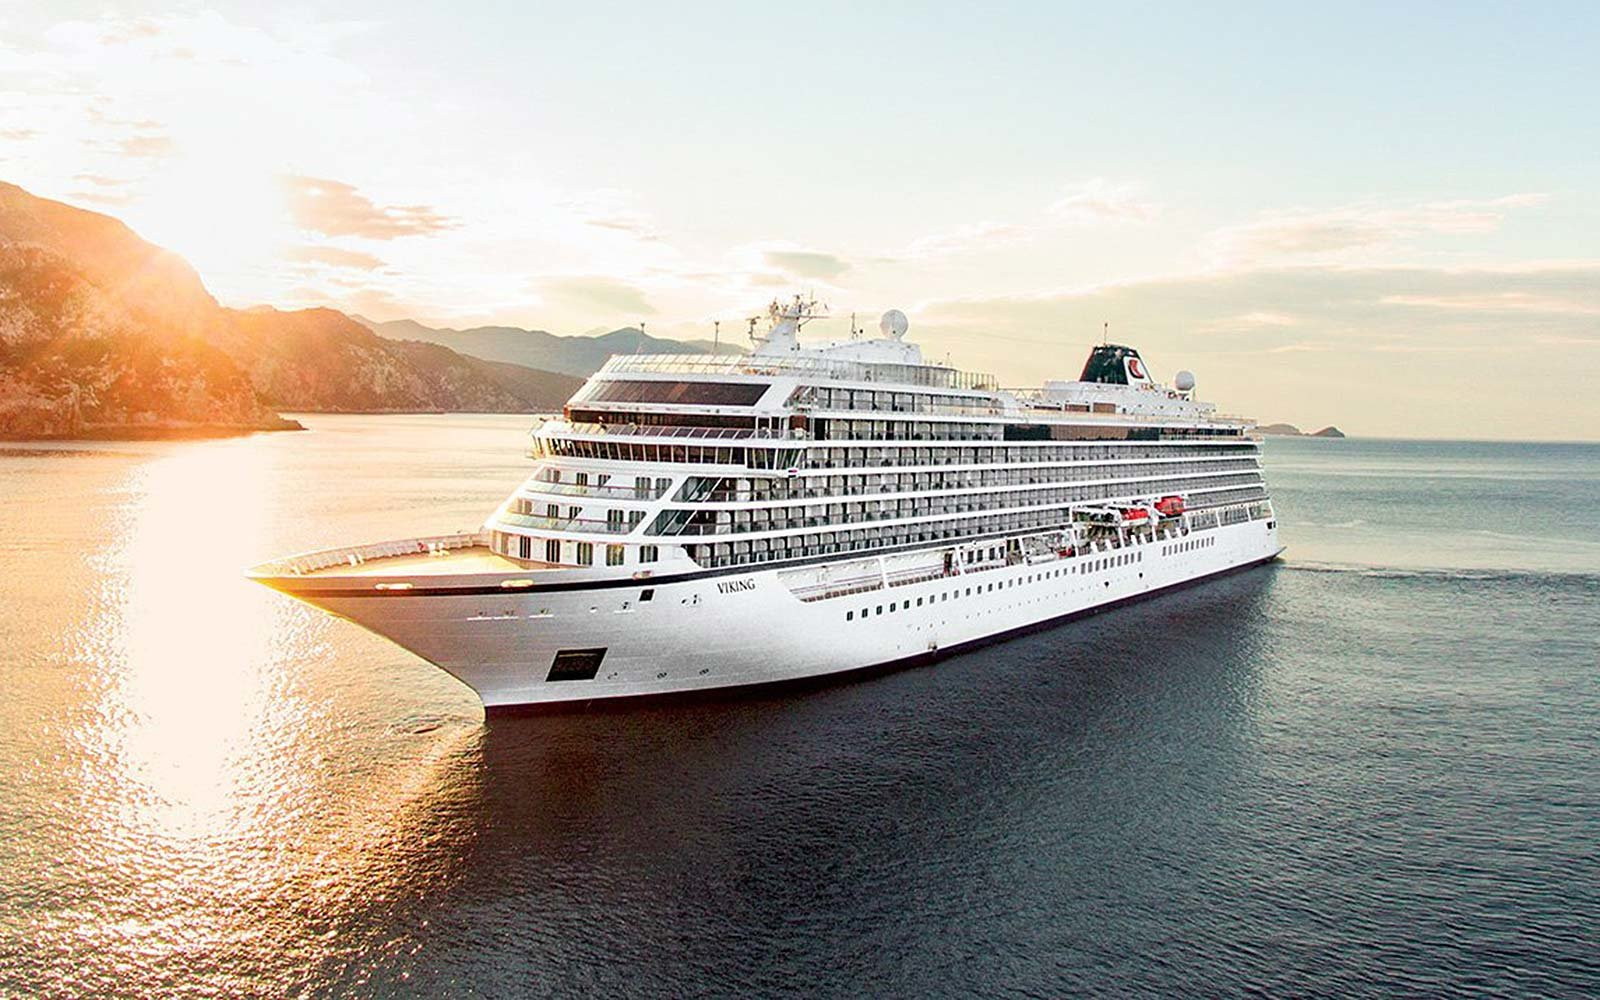 Many of the major cruise lines, and an ambitious fleet of smaller ones, will launch new ships, each one touting new features, new ports, moves toward sustainability and cultural partnerships. Viking Cruises Sun